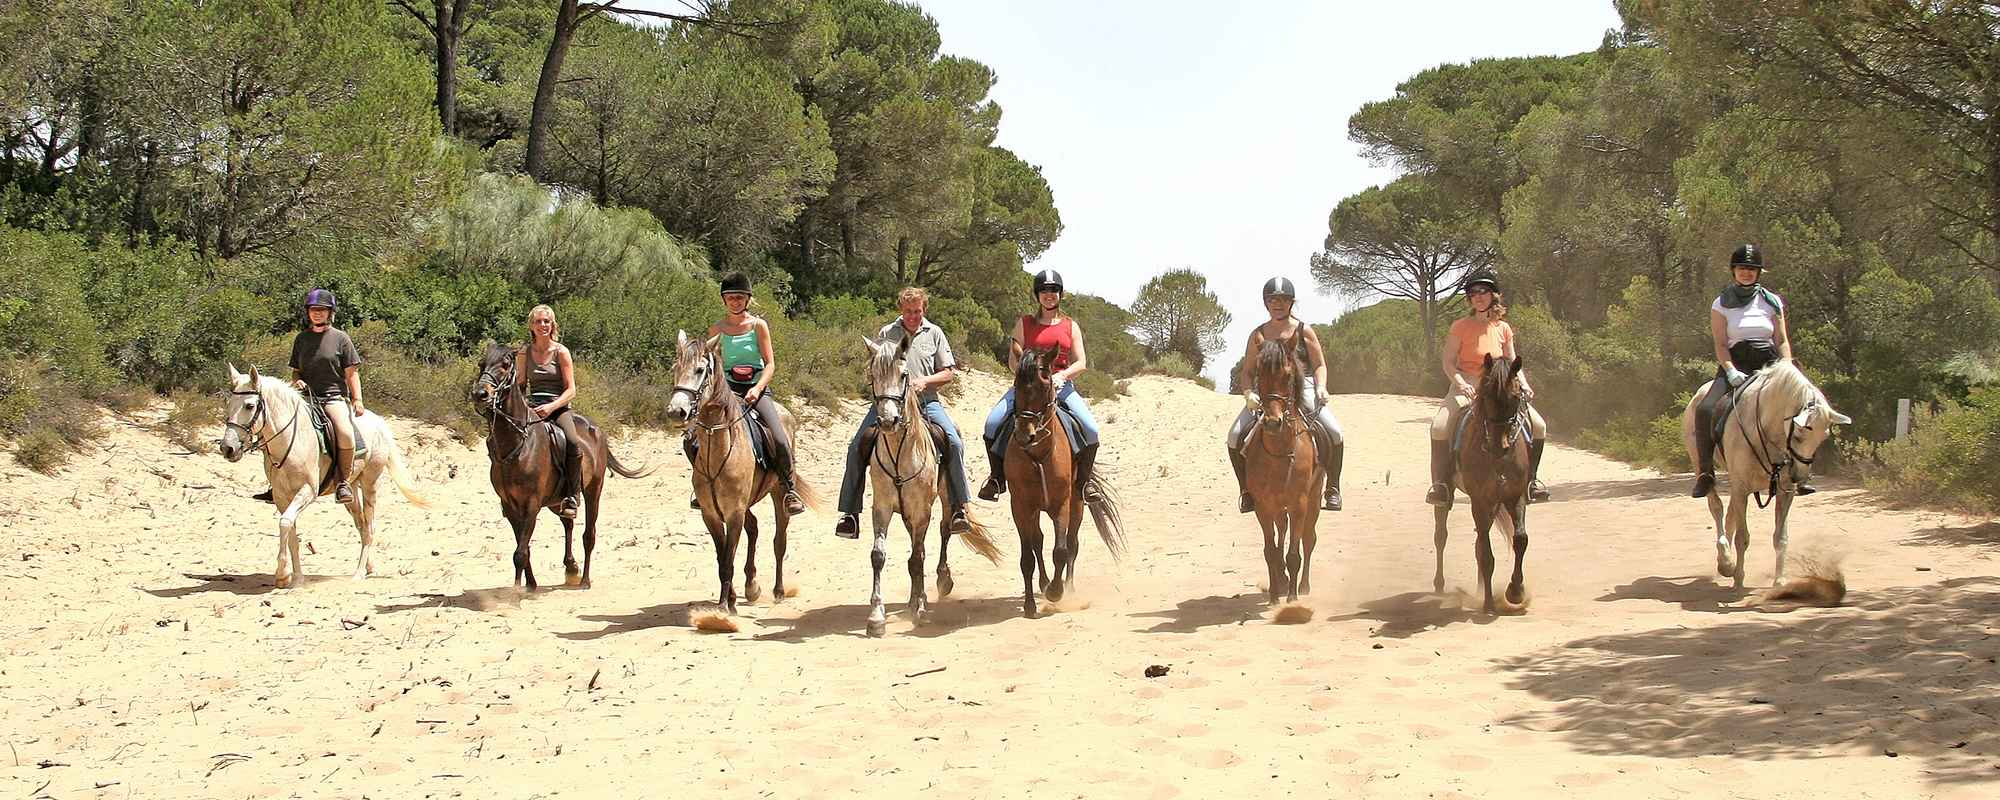 Equestrian holiday in the Cadiz province in Spain.